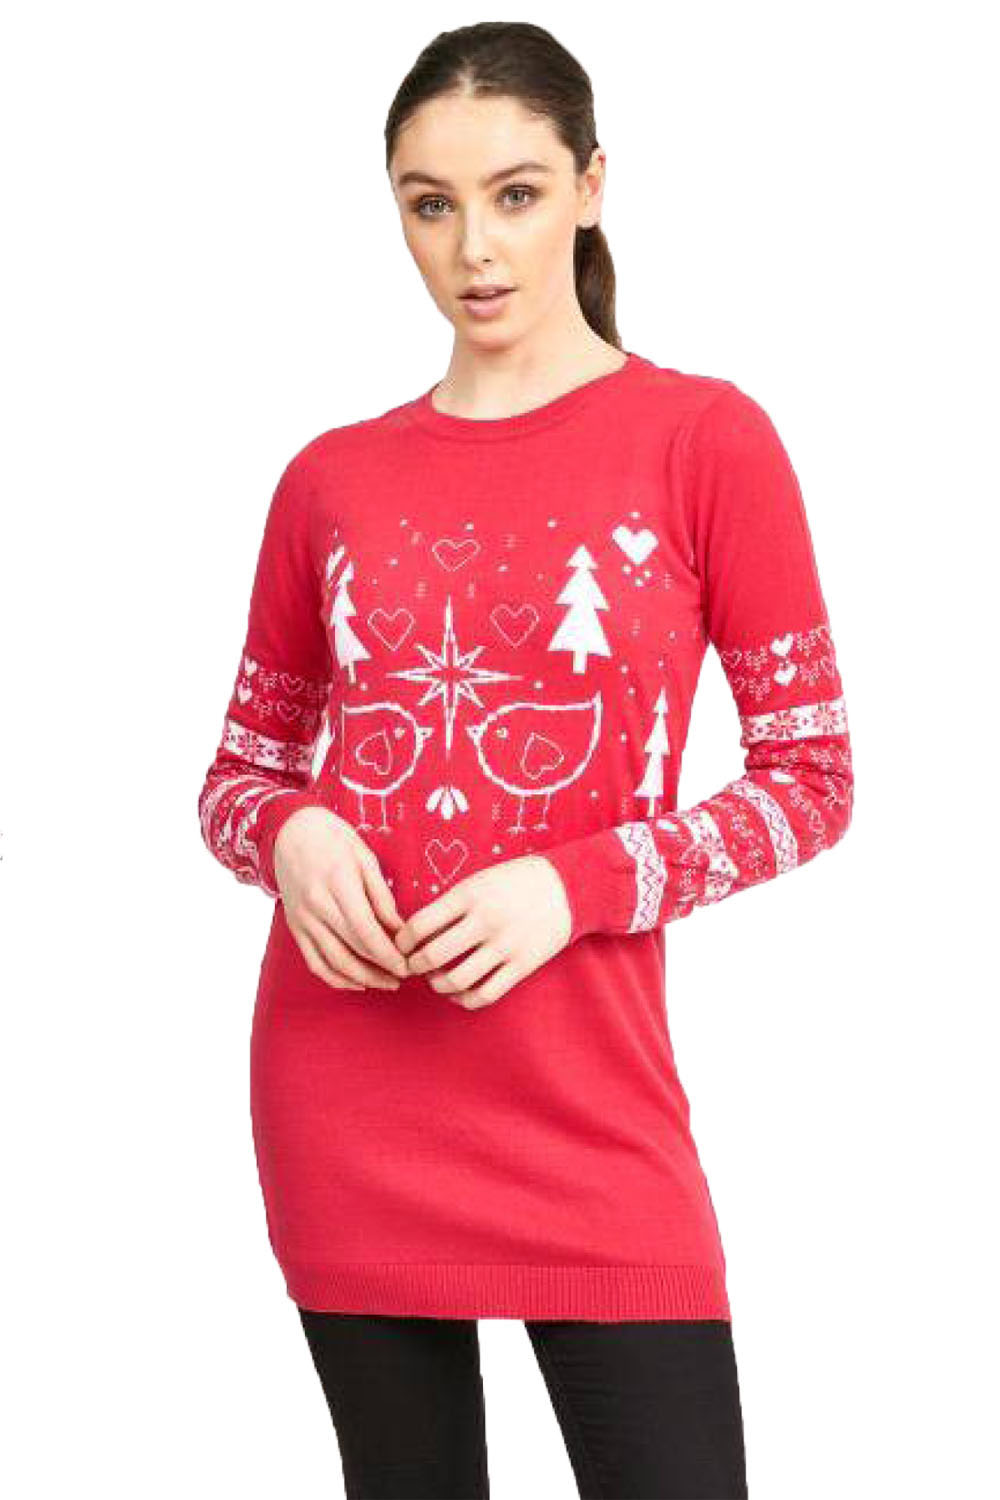 Womens Sweaters. Cozy up to the comfiest of women's clothing—sweaters! With so many shades and styles to choose from, it's easy to fill your winter wardrobe. From the warm wools to luxurious cashmere, shop the selection of women's sweaters. Don't forget to check out the selection in petite and plus sizes to find the right fit.